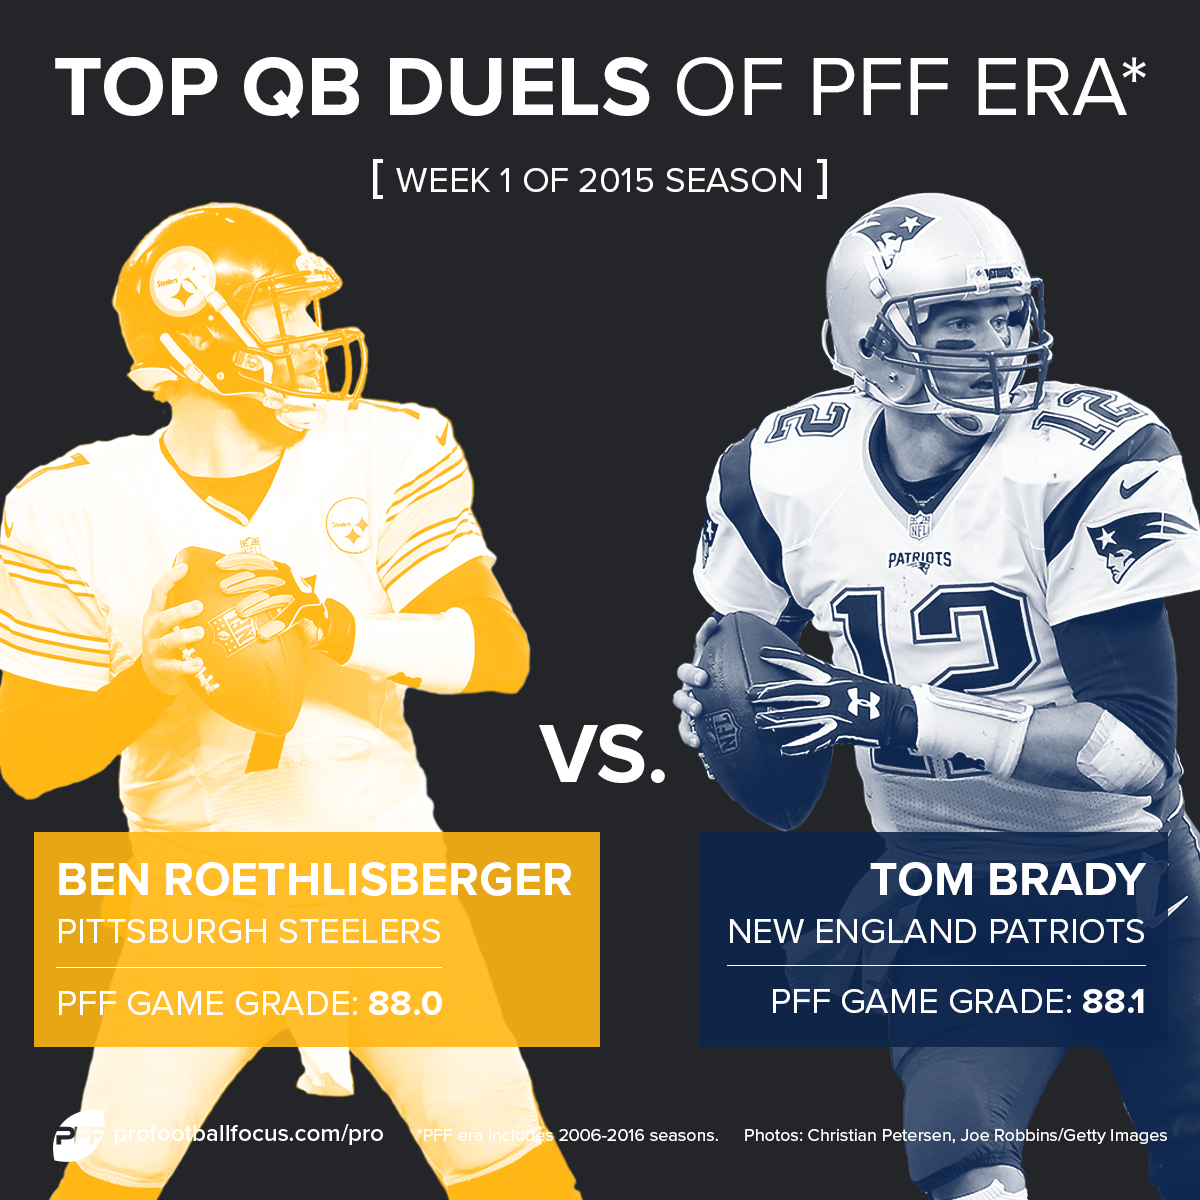 Ben Roethlisberger vs. Tom Brady